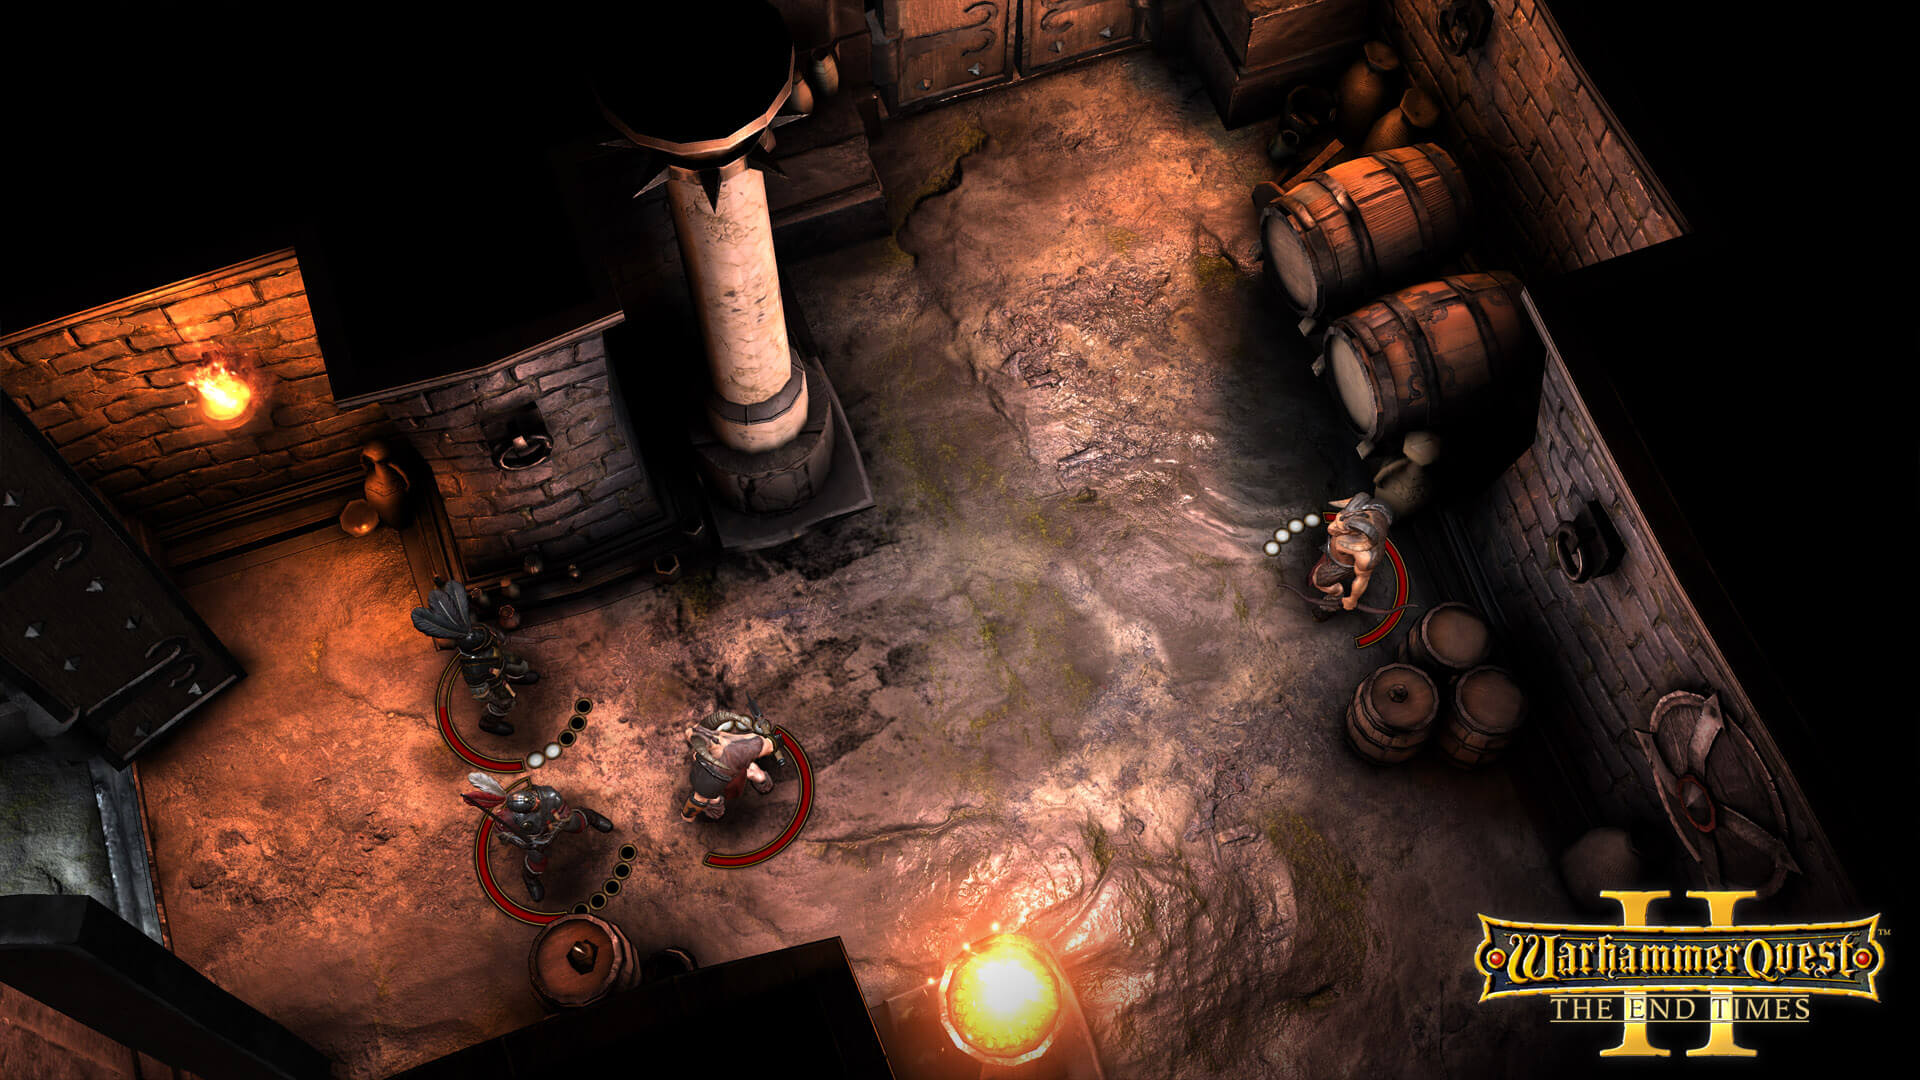 Warhammer Quest 2: The End Times iOS Preview